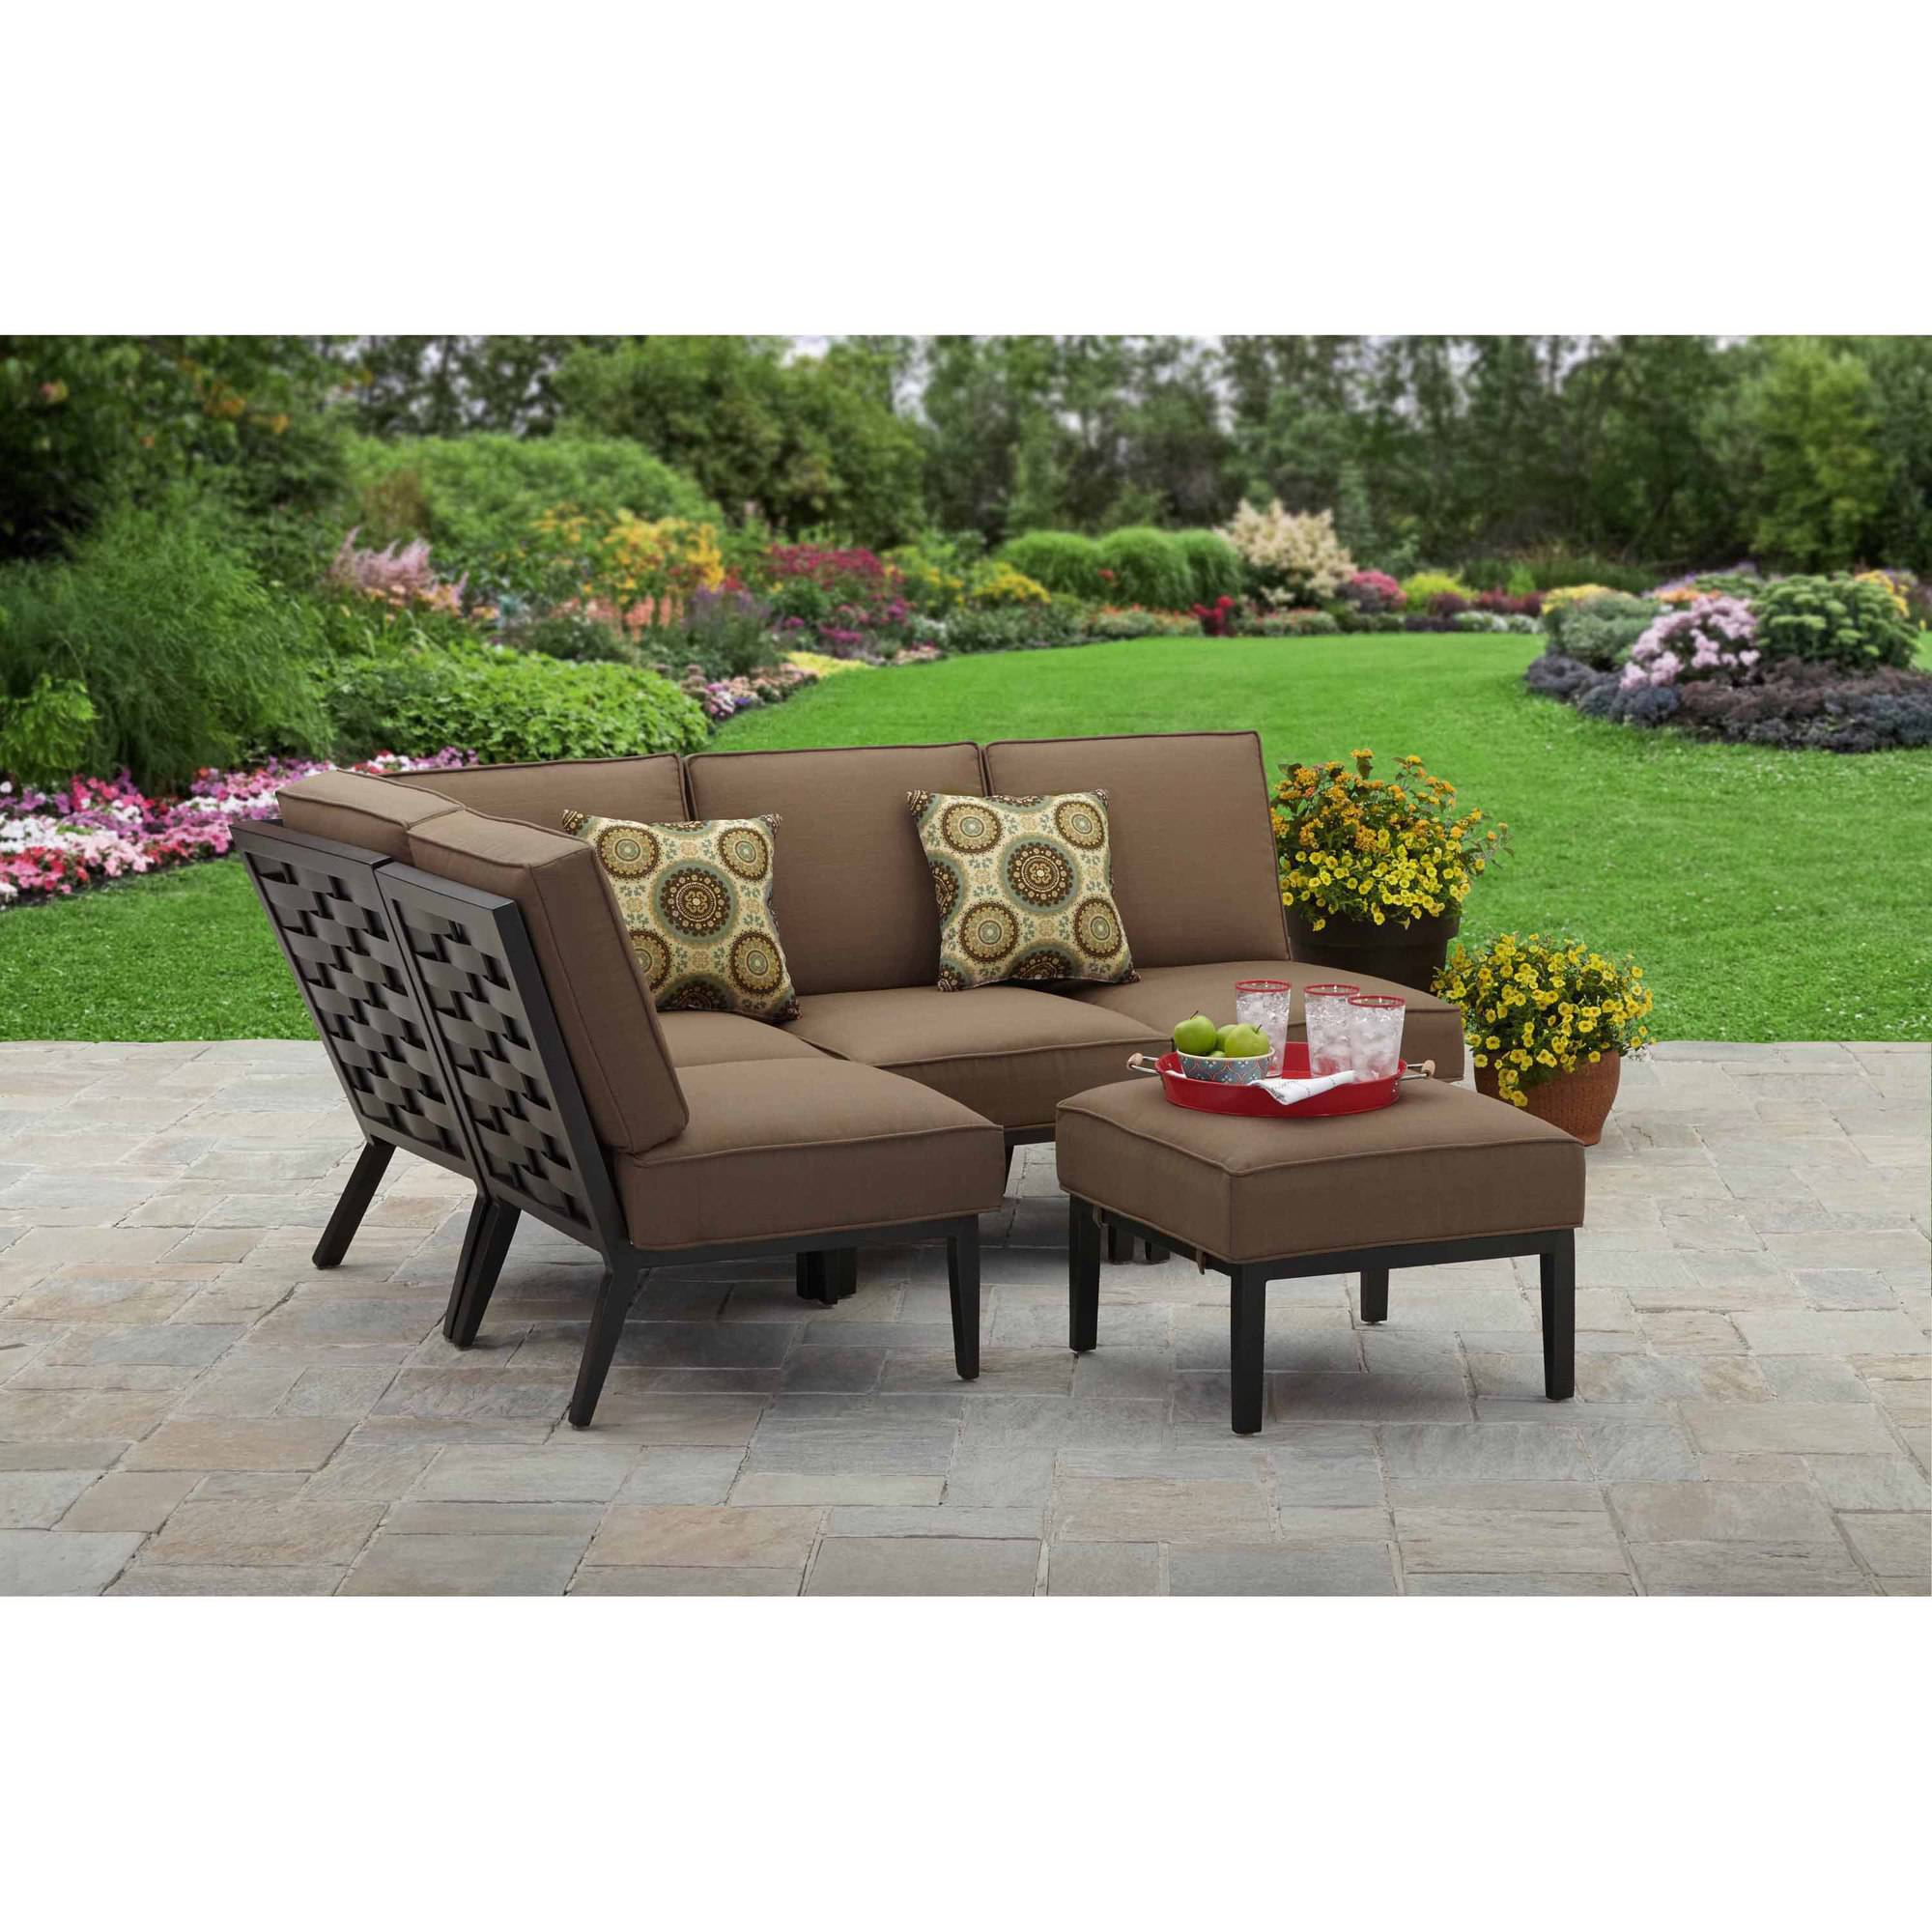 best ideas l patio fresh great deep awesome sets small collection seating of sectional outdoor set furniture shaped